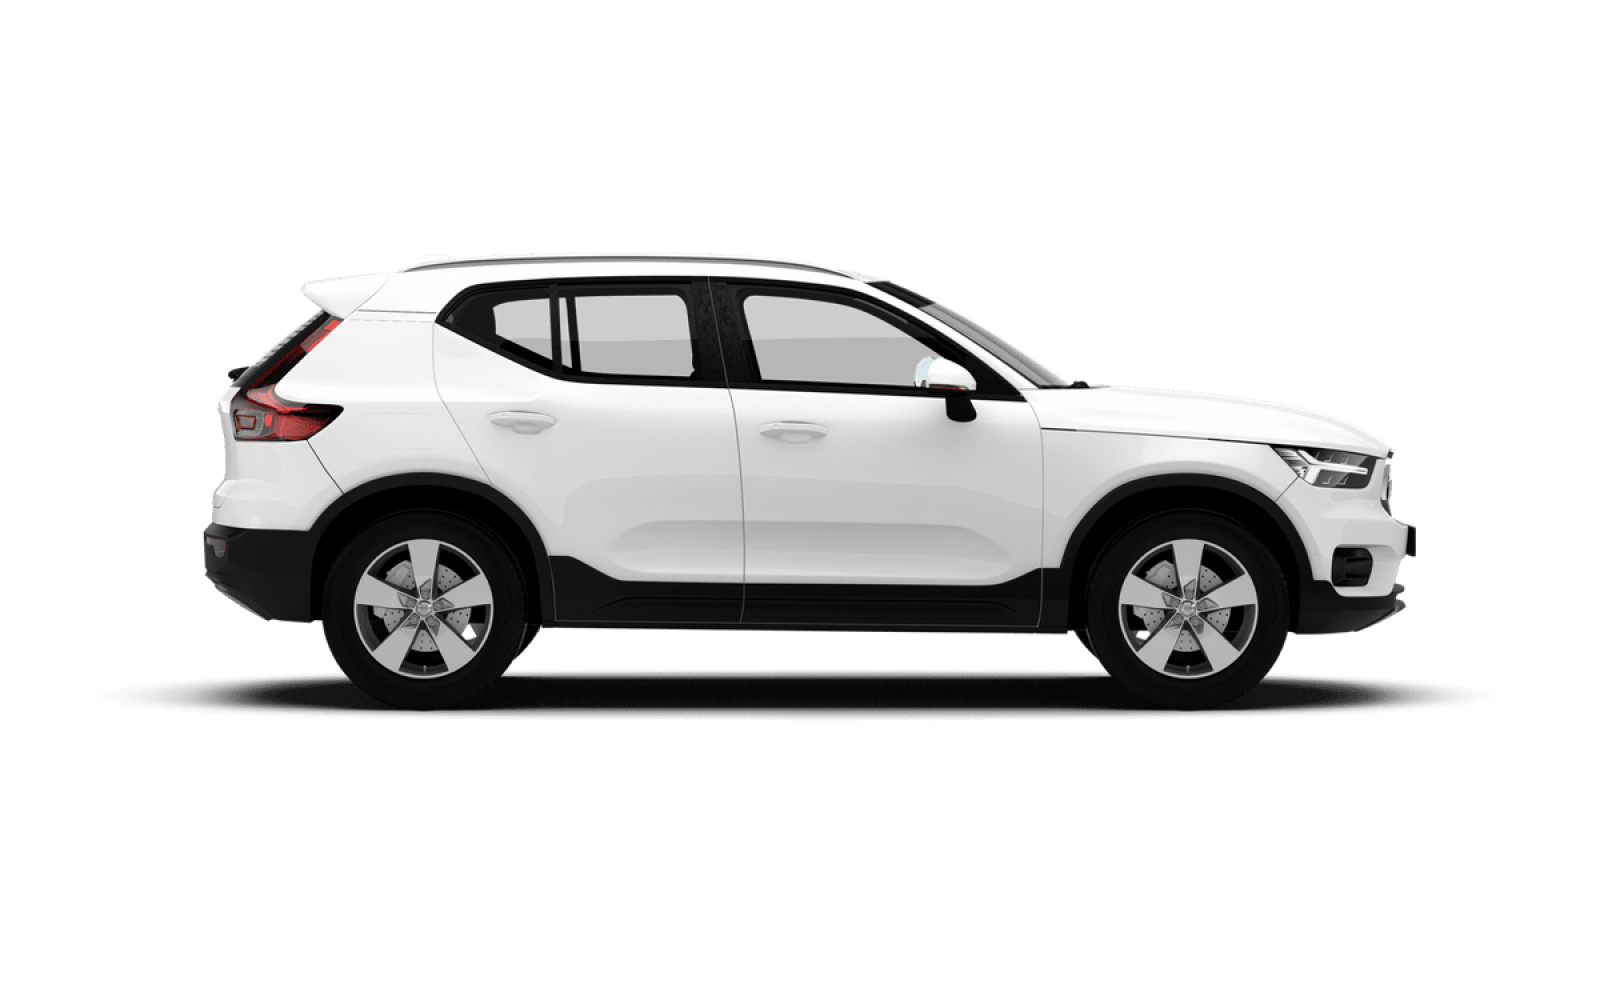 VOLVO Xc40 B4 145kW 8AT Momentum Pro large 97 - operativní leasing